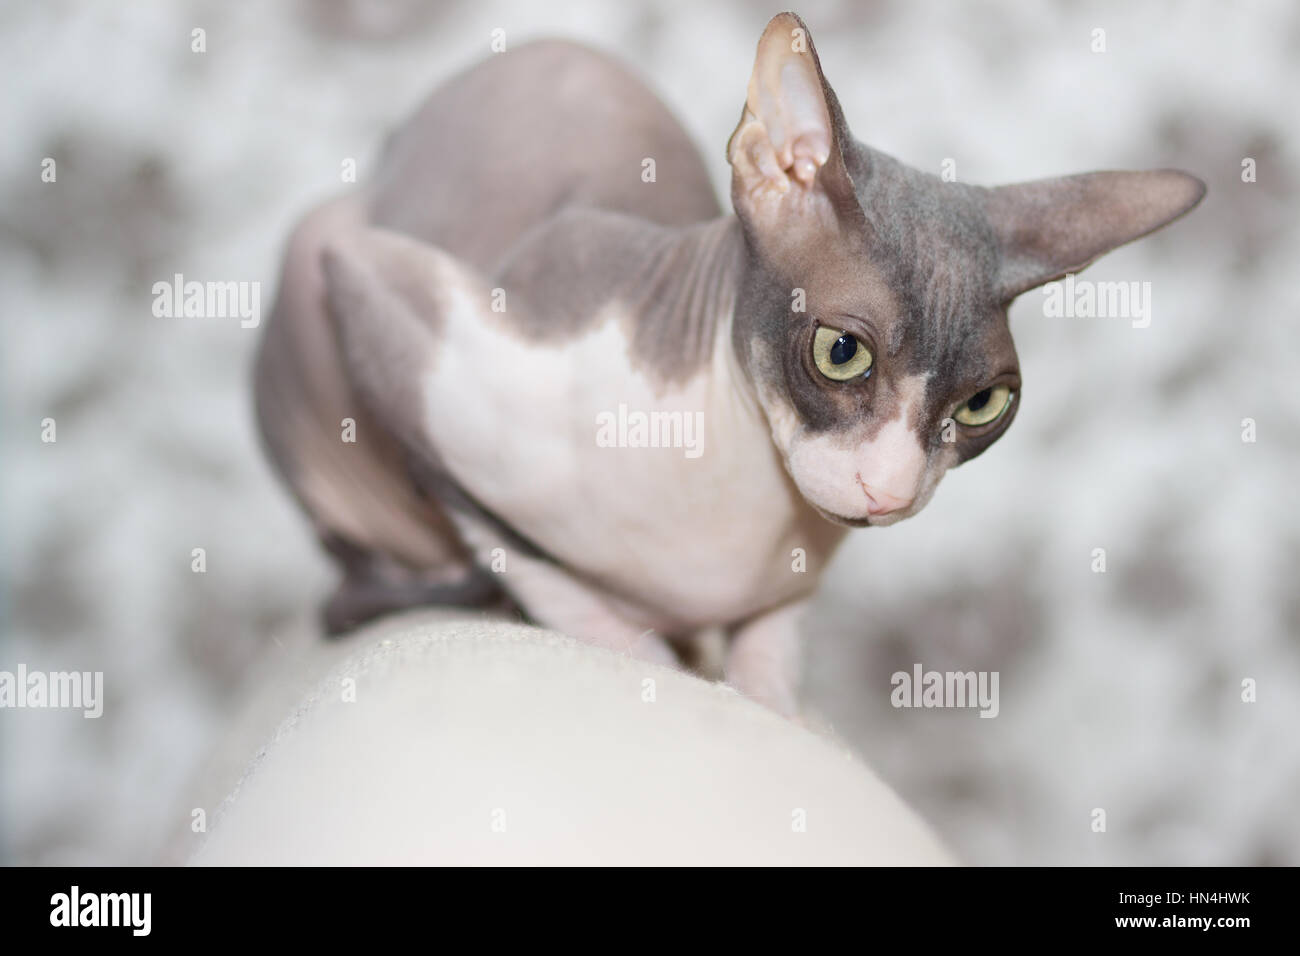 Cat breed Sphynx looks down from the back of the sofa - Stock Image